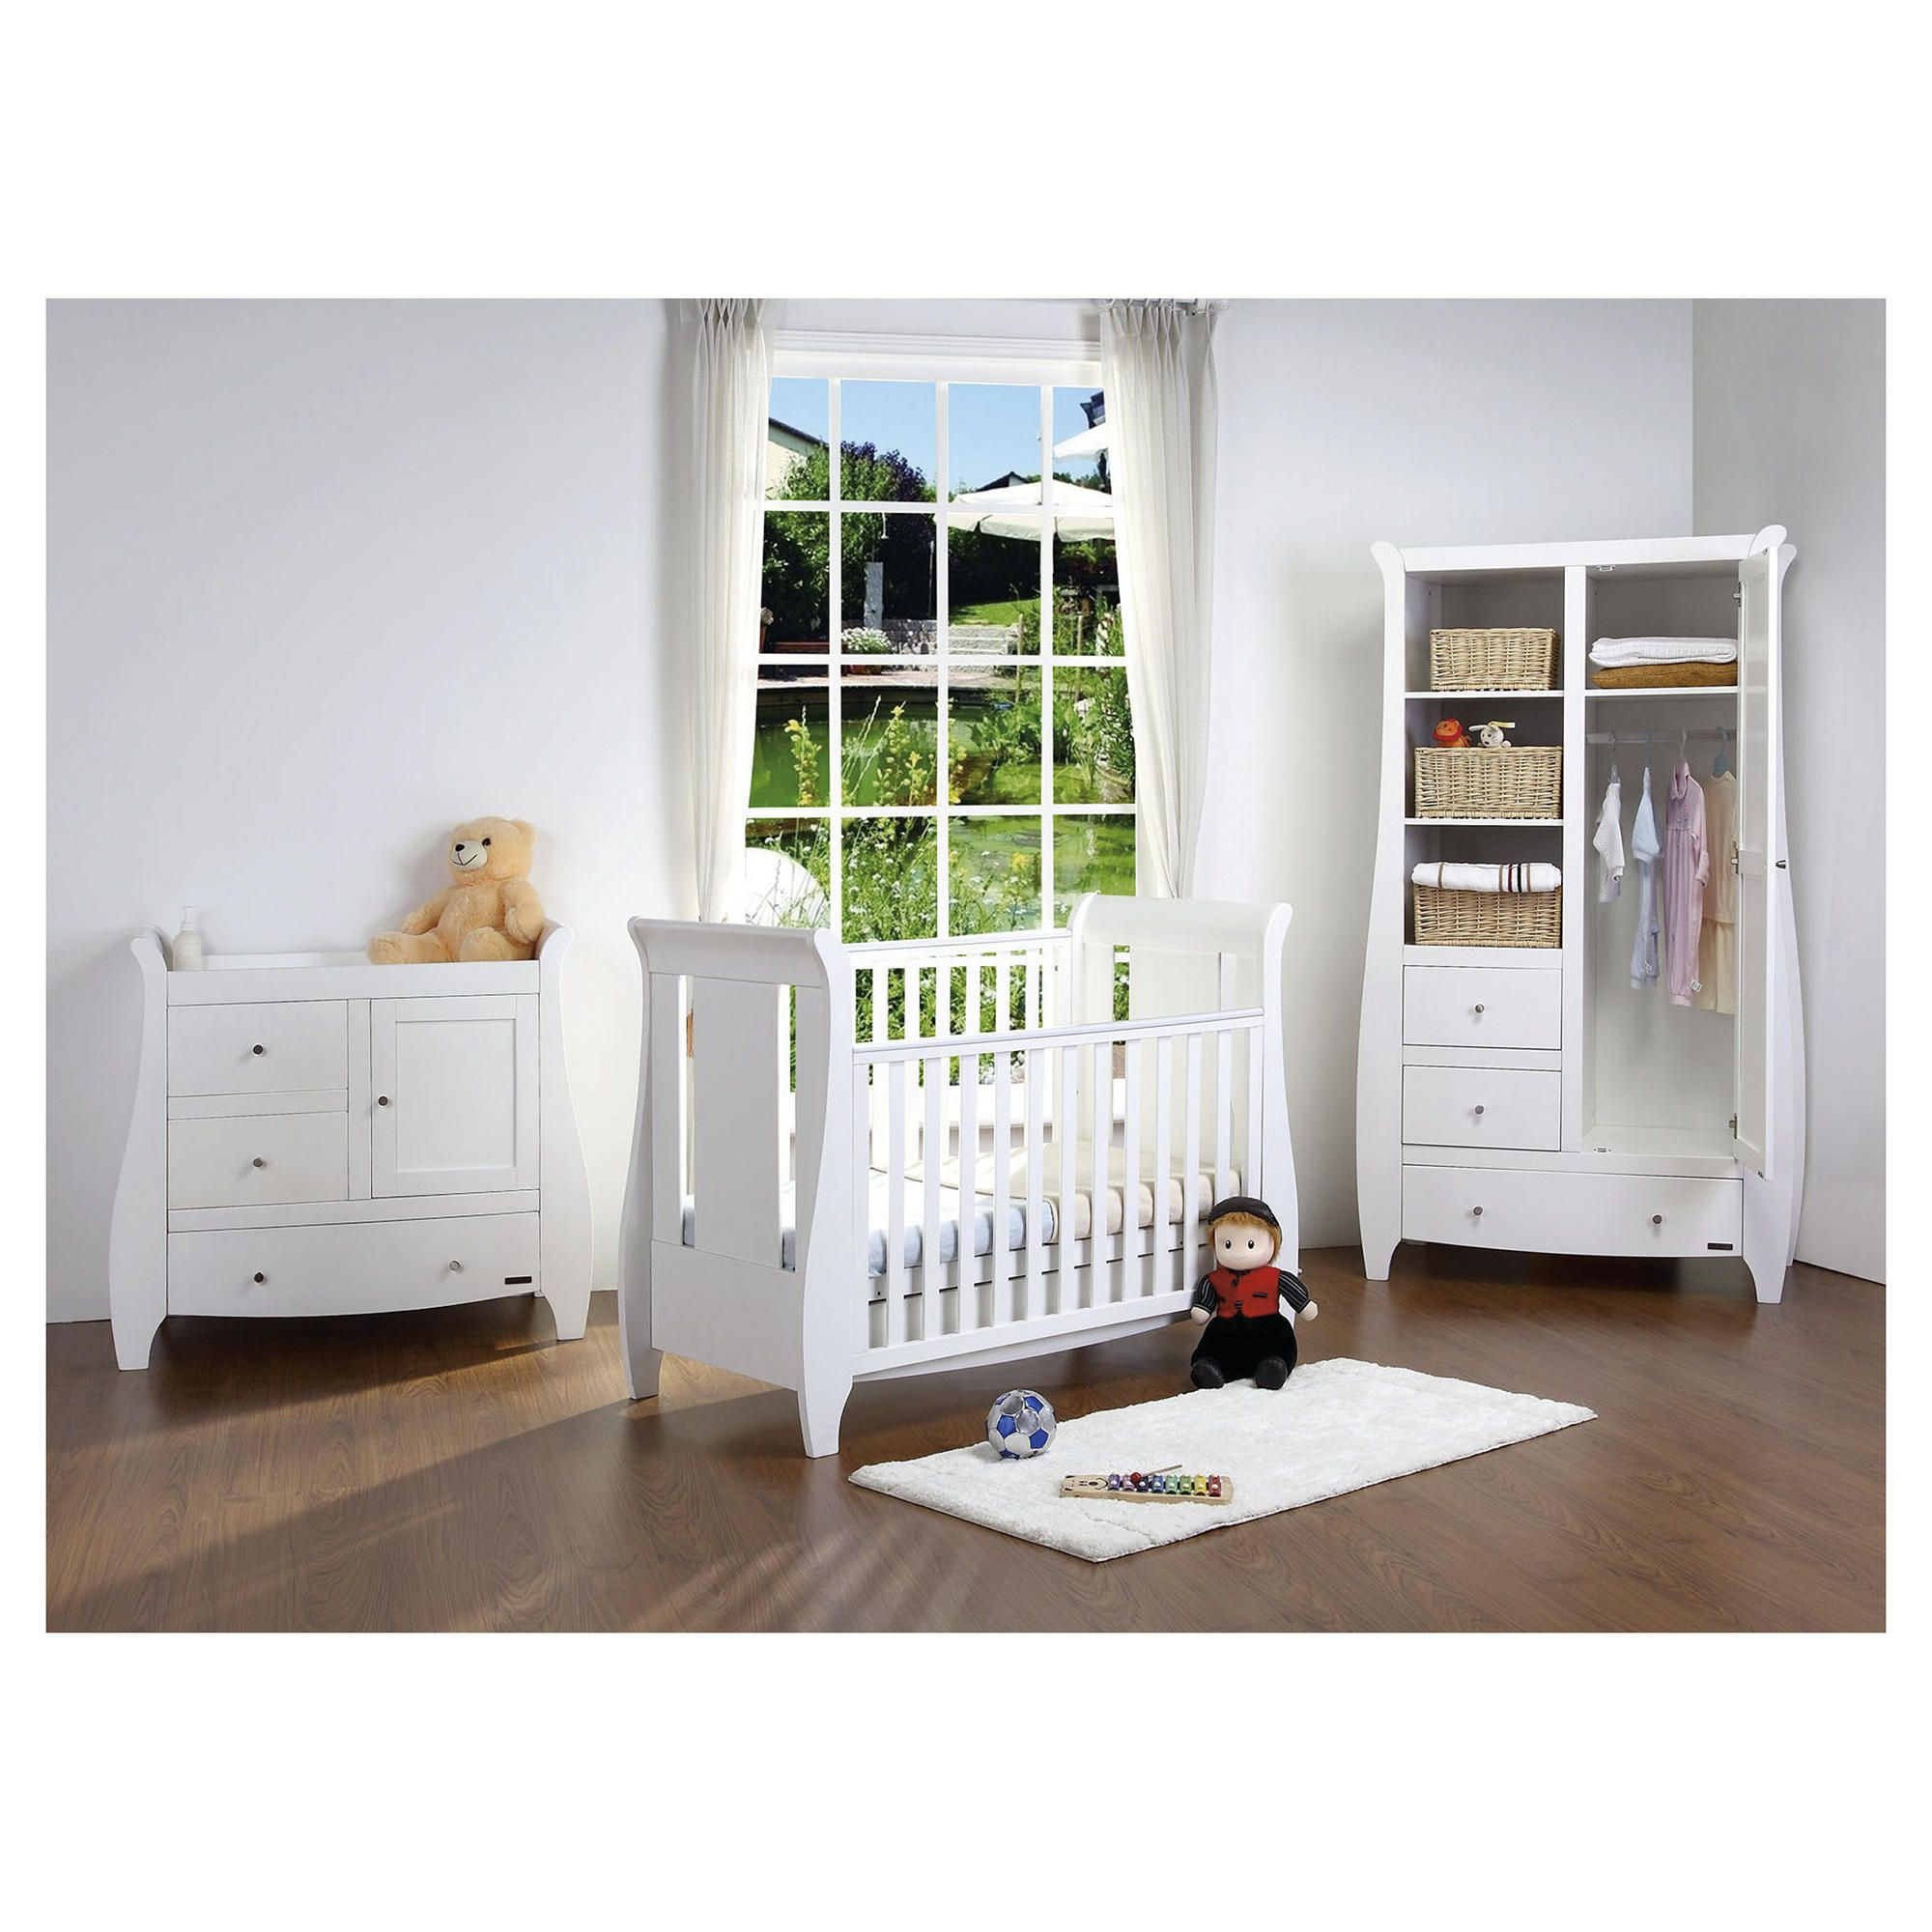 Tutti Bambini Katie 3 Piece Room Set, White with FREE Home Assembly at Tesco Direct